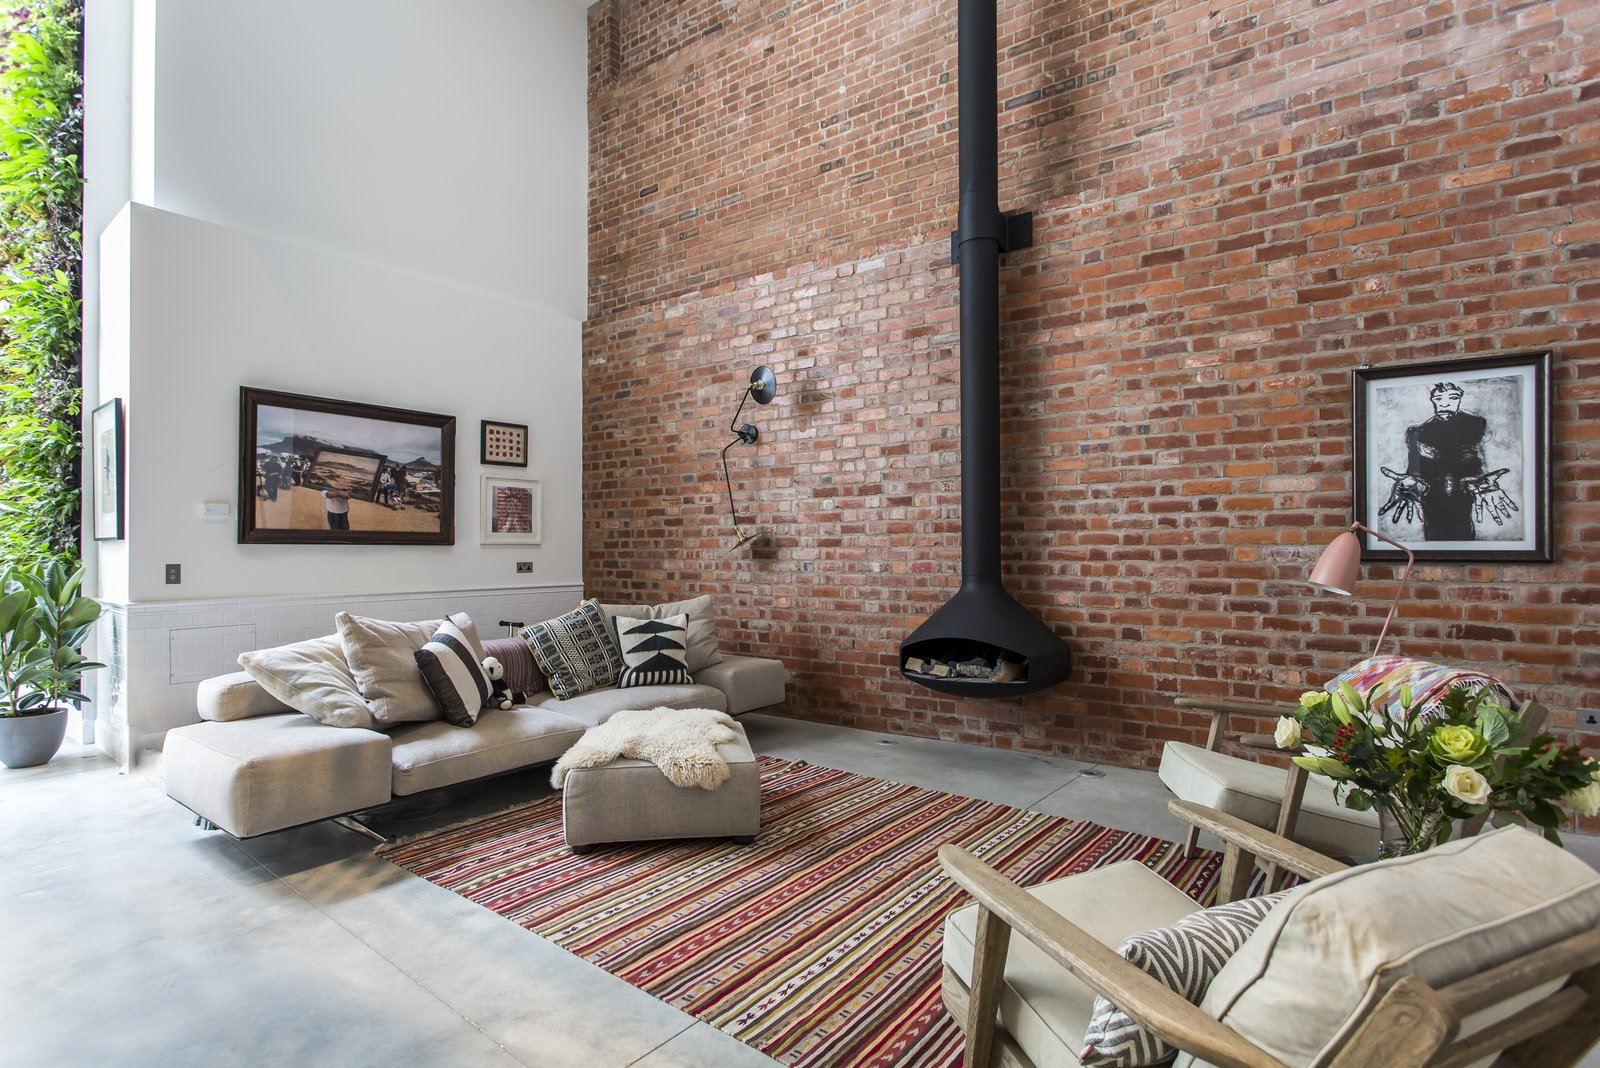 Living Room, Concrete Floor, Chair, Floor Lighting, Wall Lighting, Wood Burning Fireplace, Rug Floor, Ottomans, Sofa, and Hanging Fireplace  Photo 1 of 8 in Stay in a Converted Victorian Cooperage in London